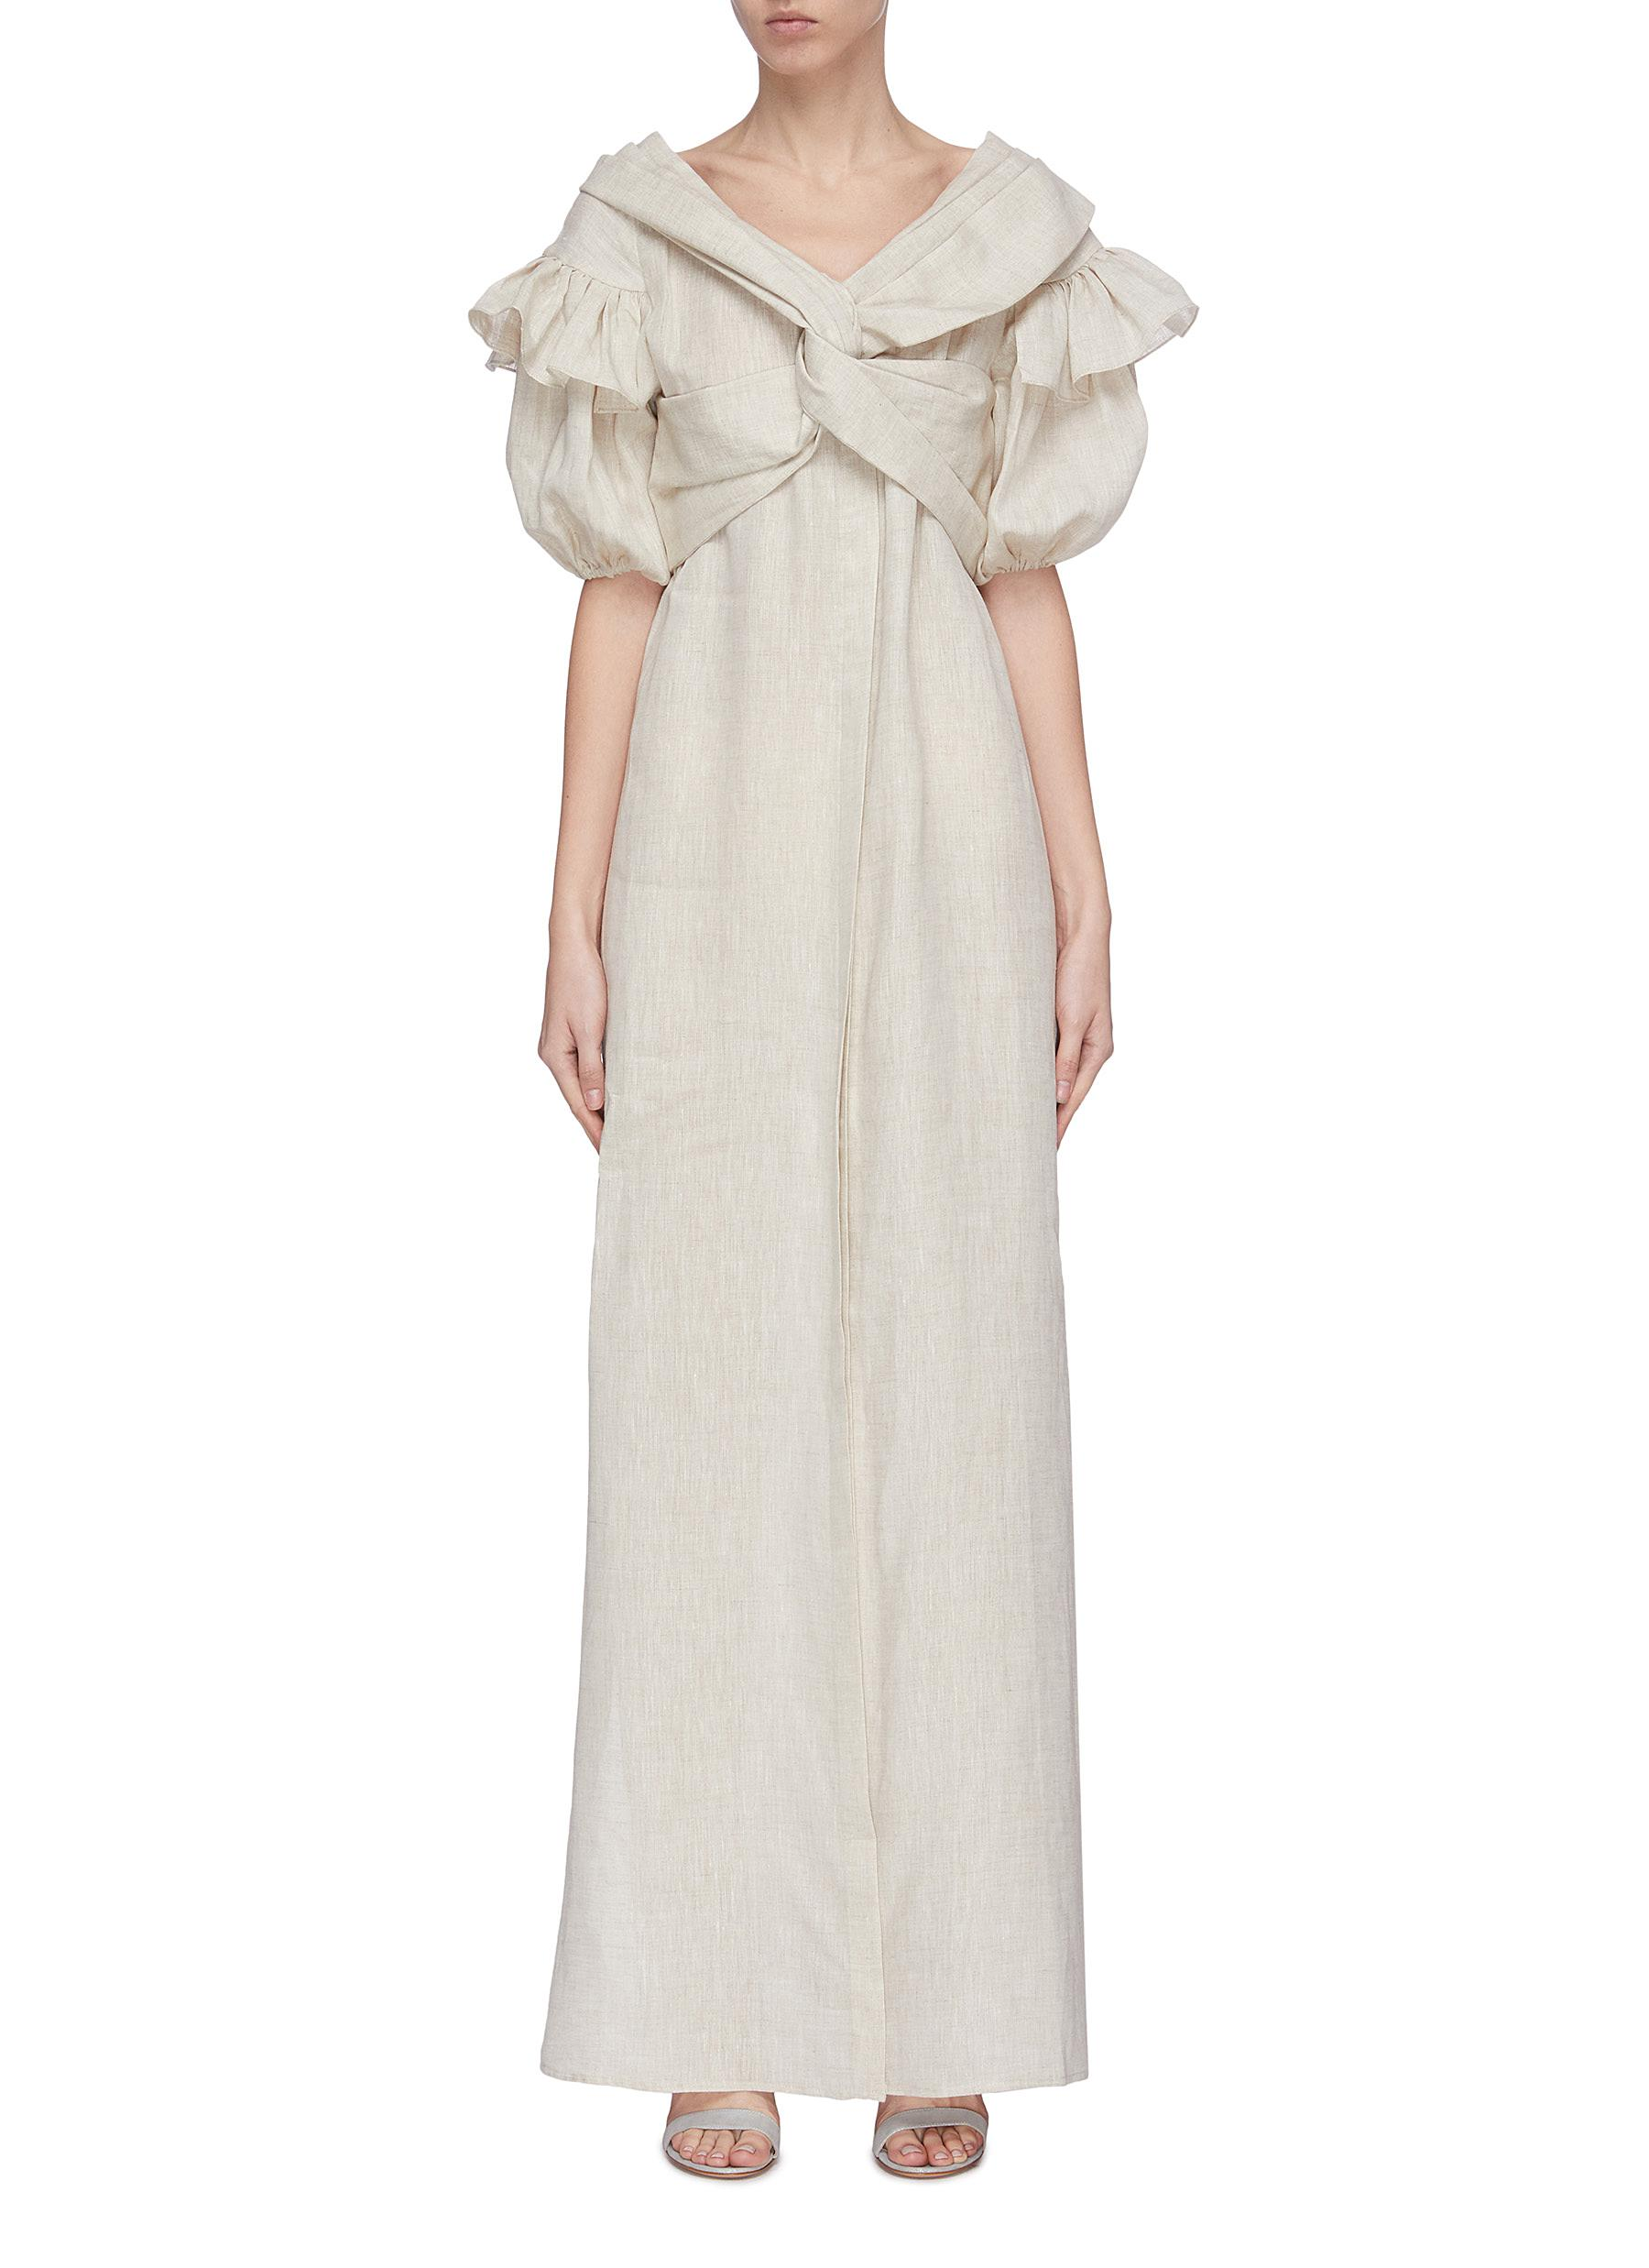 shop Leal Daccarett 'Anastasia' twisted front puff sleeve maxi dress online